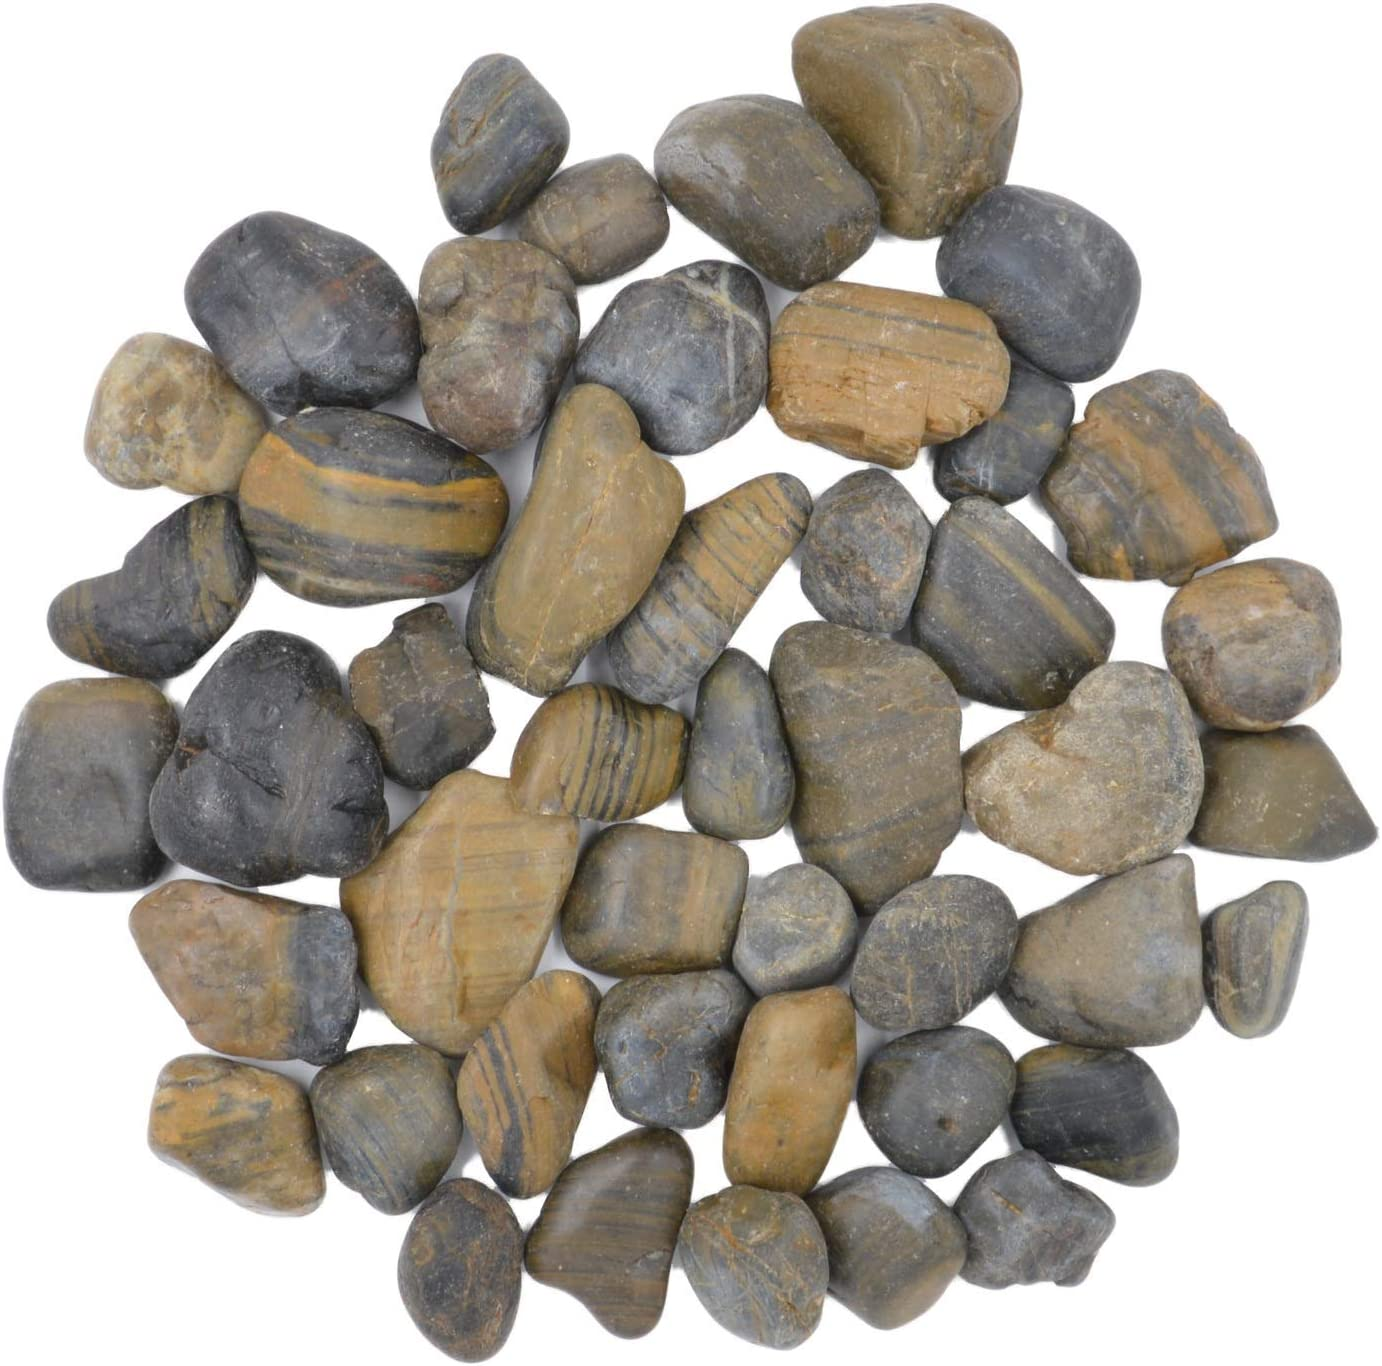 CNZ Polished Pebble Stone Striped 5 Super Philadelphia Mall beauty product restock quality top Plan Pounds for Inch 1.0-1.5